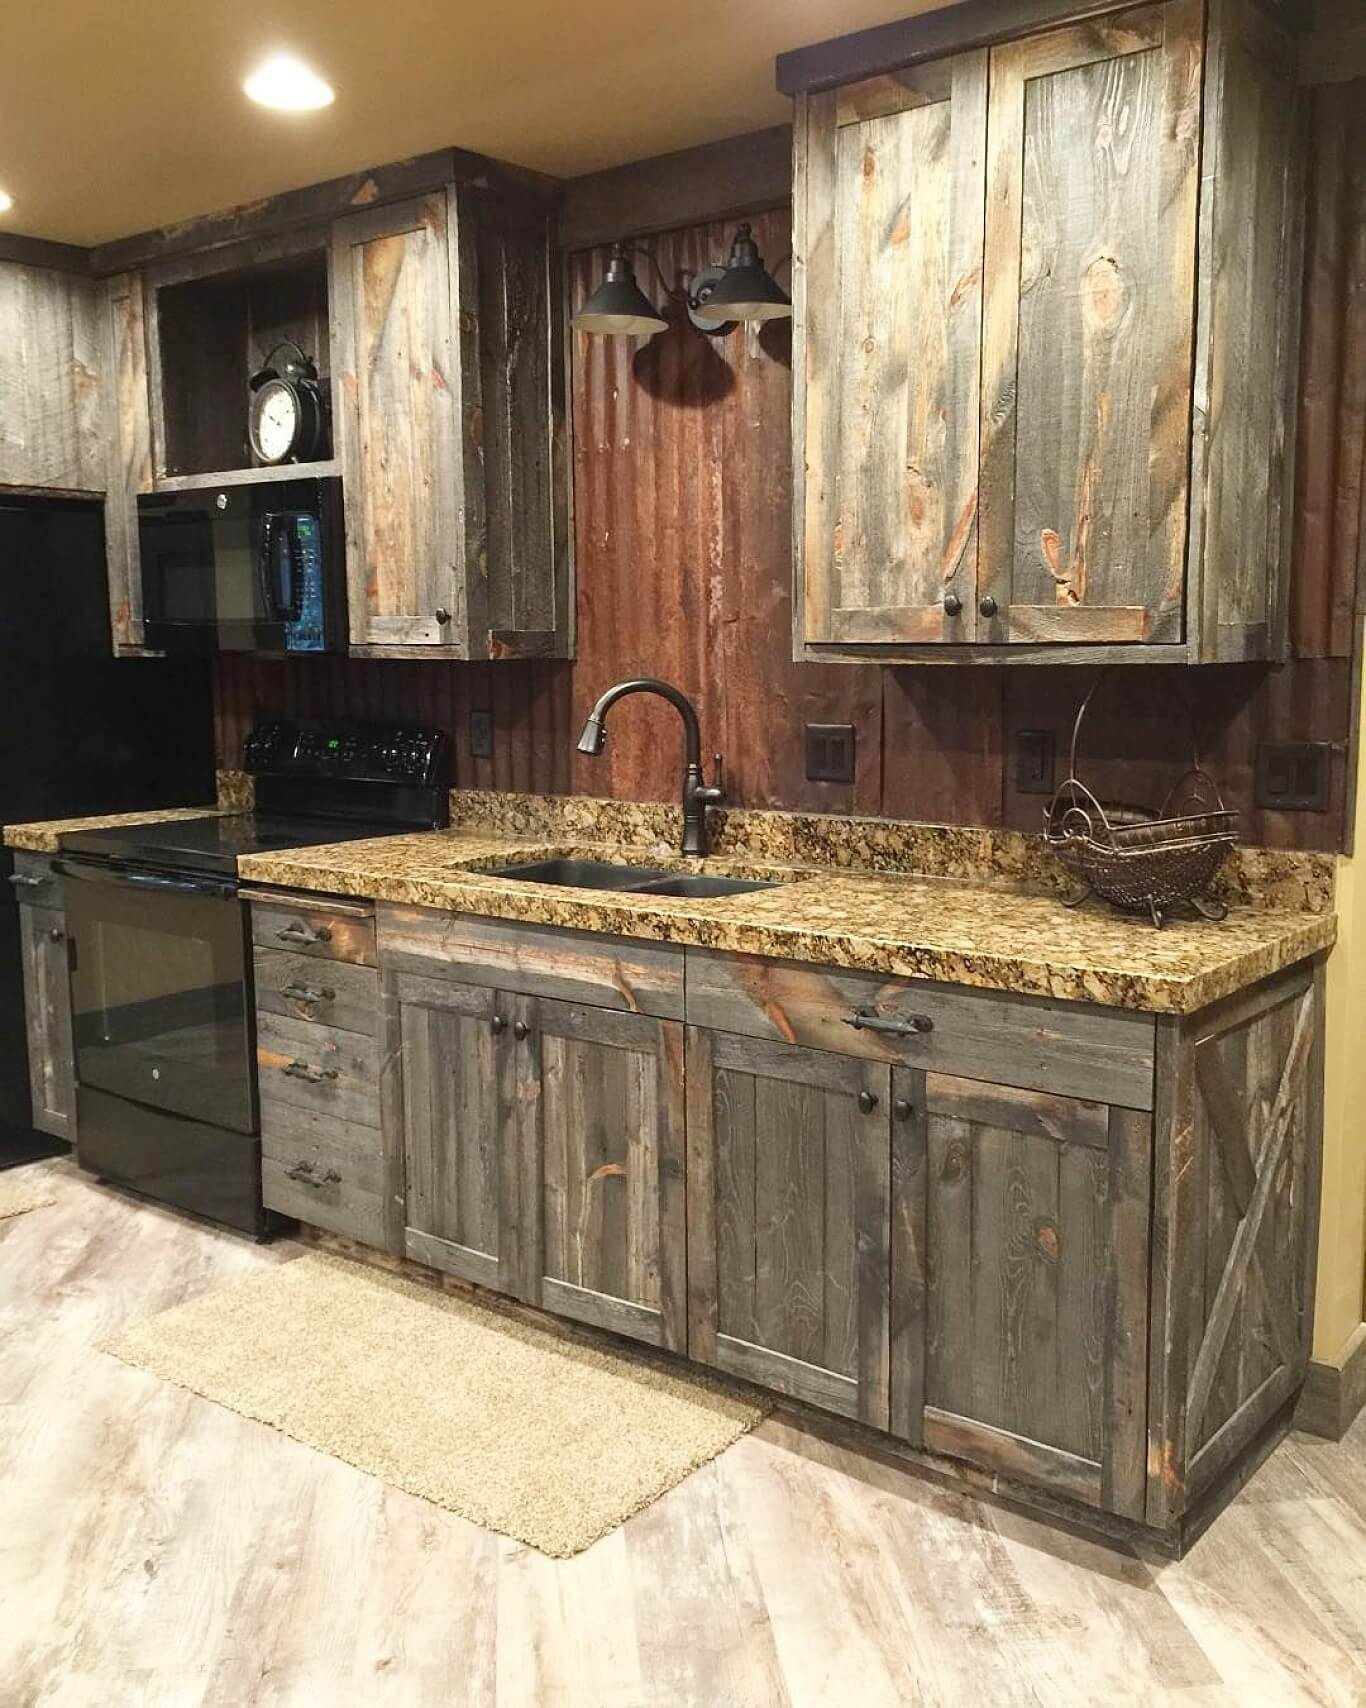 32 Charming Ways To Add Reclaimed Wood To Your Kitchen And Make Your Space Gorgeous Rustic Kitchen Rustic Kitchen Cabinets Rustic House